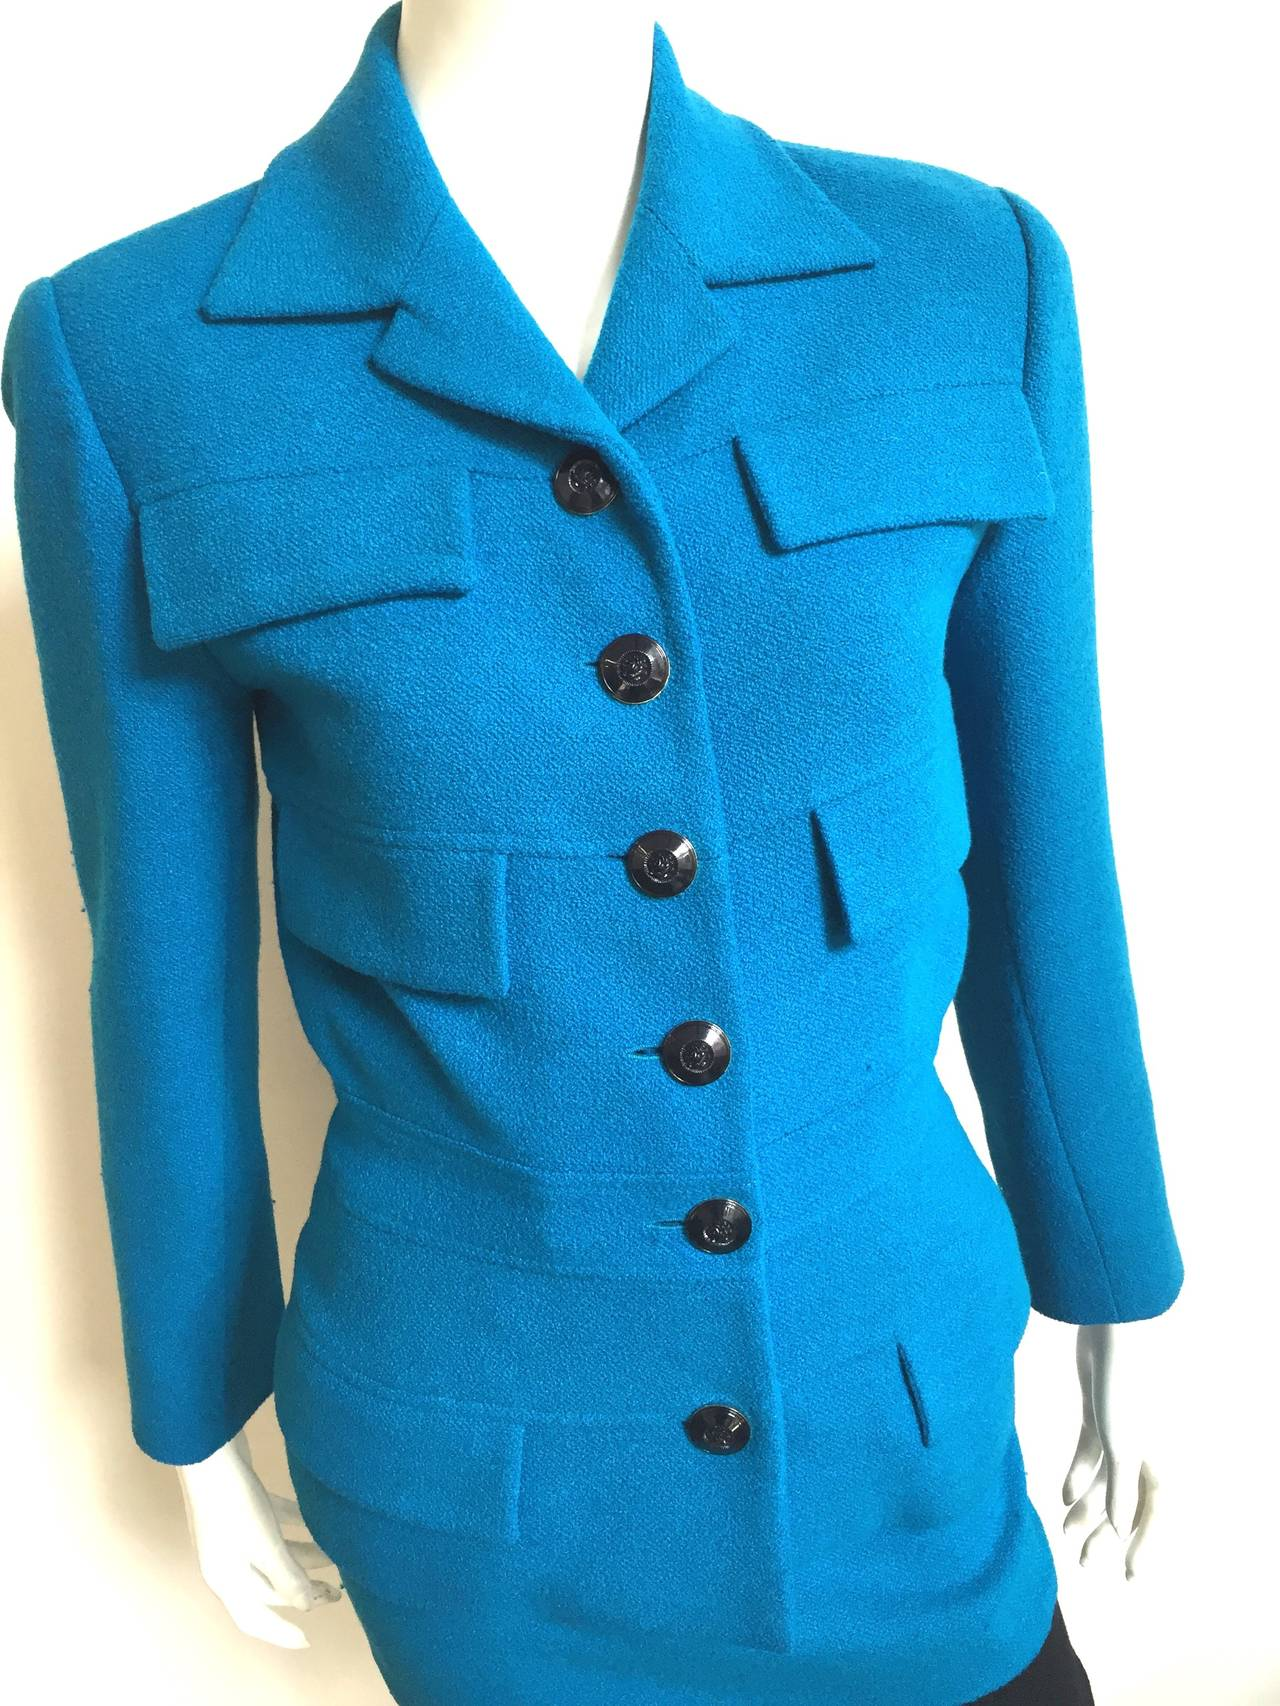 Karl Lagerfeld 1980s wool 3 piece set - jacket - skirt - belt is a French size 36 but fits like a modern USA size 4.   Please see & use the measurements below to measure your bust, waist & hips so that you know this suit will fit the way Karl wants